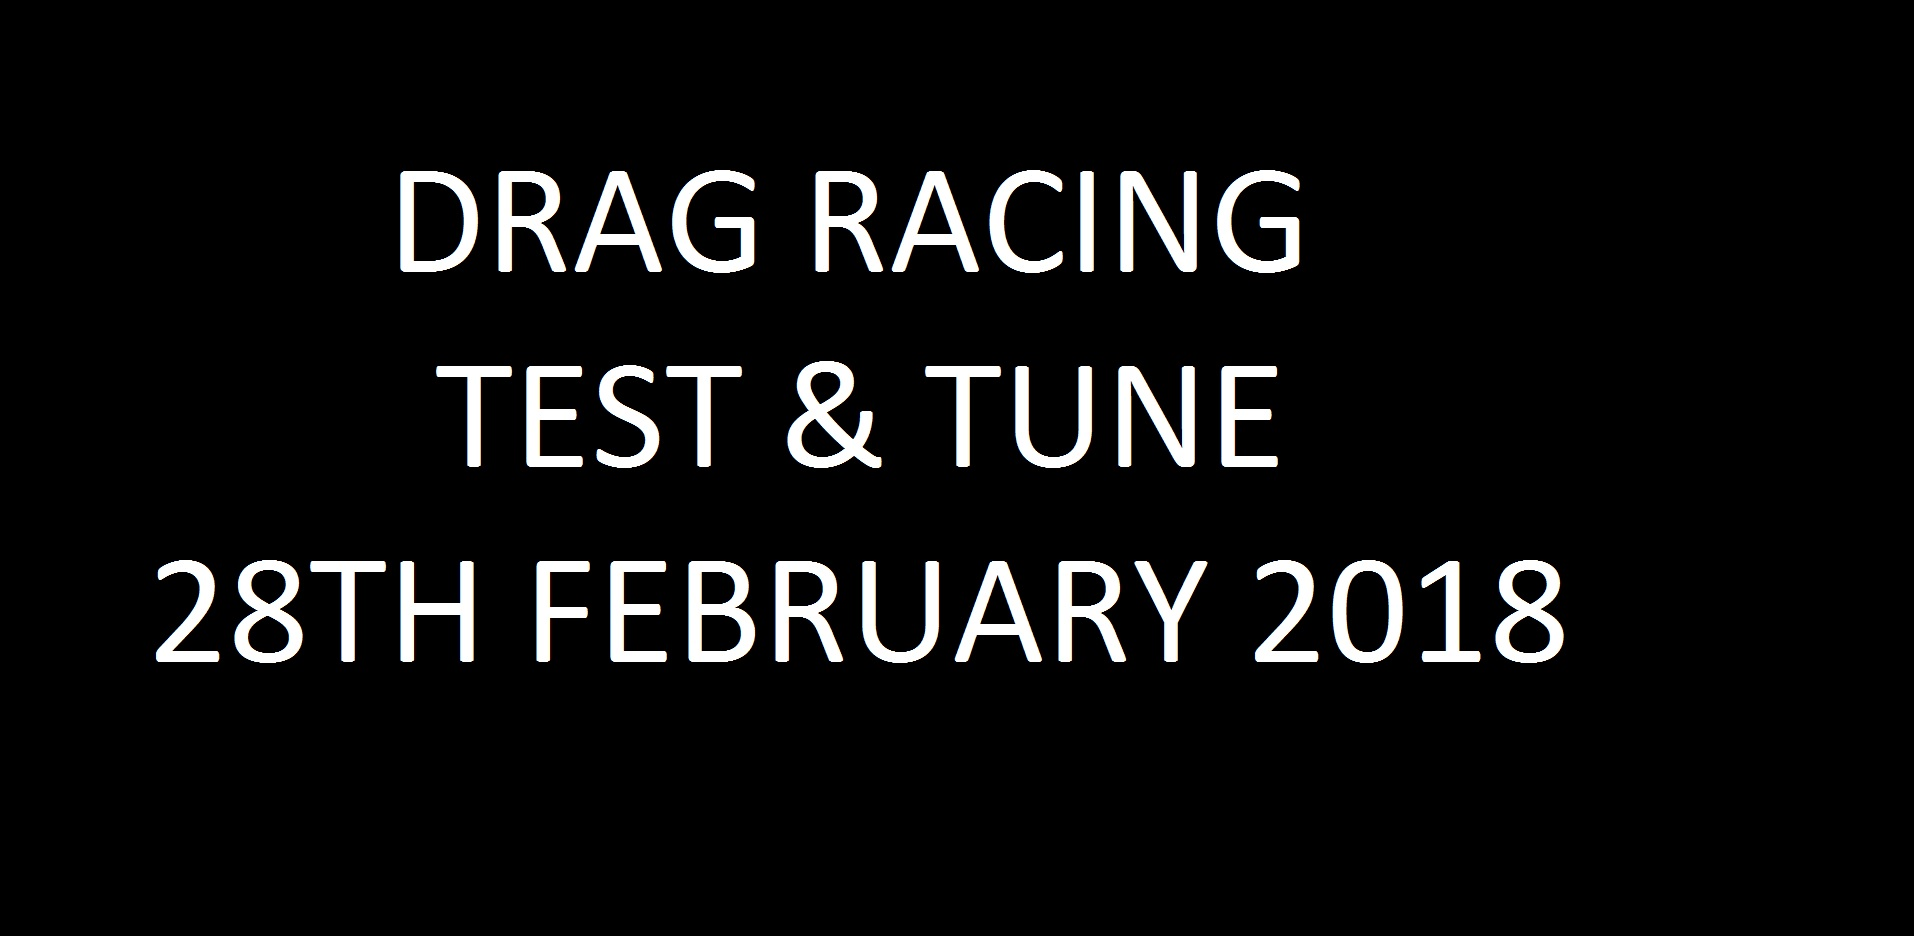 Test and Tune 28th February 2018 Image